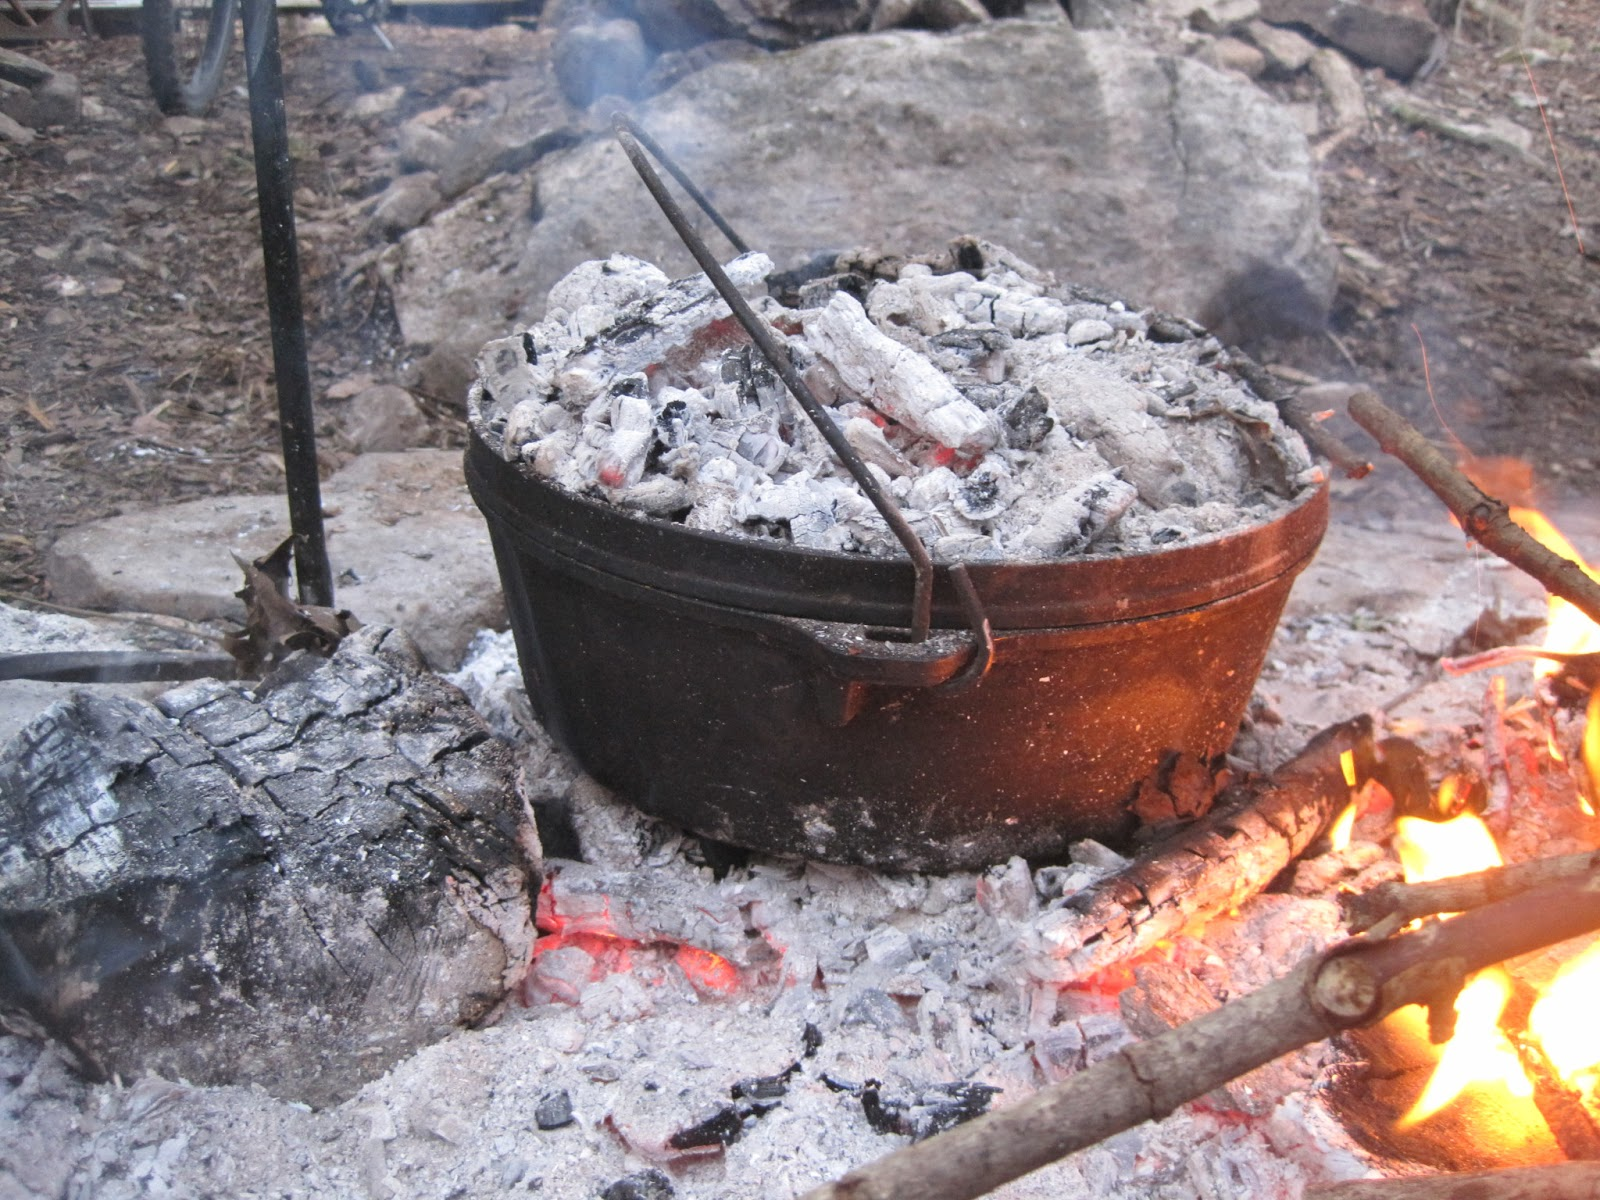 Reflections on our family 39 s journey down the road of life for How to cook in a dutch oven over a campfire